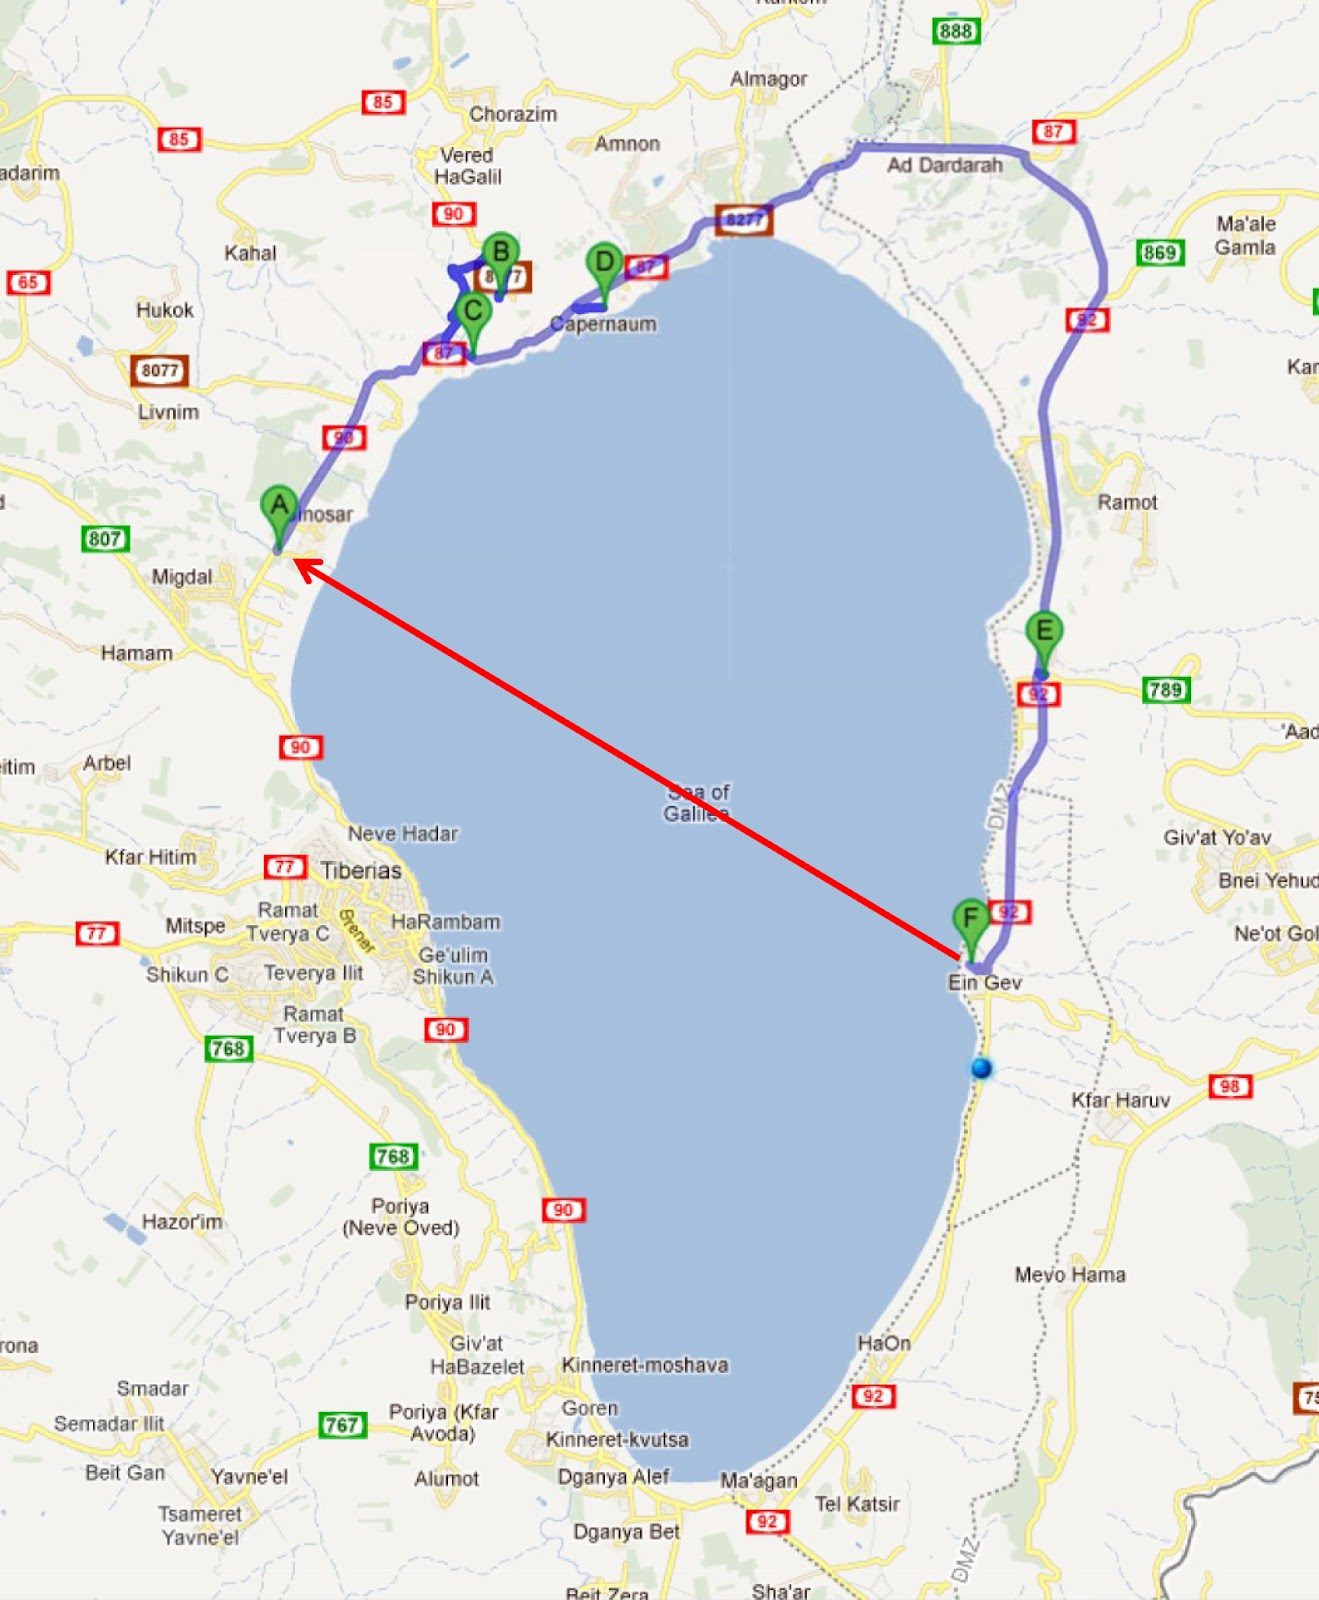 Huntsmans in the Holy Land: Galilee Rotation Day 2: Sites on ... on judea map, mount of beatitudes, red sea, tyre map, bethsaida map, masada map, jezreel valley map, canaan map, rheinhessen map, jerusalem map, mount of olives, world map, syria map, gaza map, jordan river, gaza strip, haifa map, capernaum map, jordan river map, quonset map, nazareth map, dead sea map, negev map, rome map, church of the holy sepulchre, tel aviv, west bank, dead sea, golan heights map,